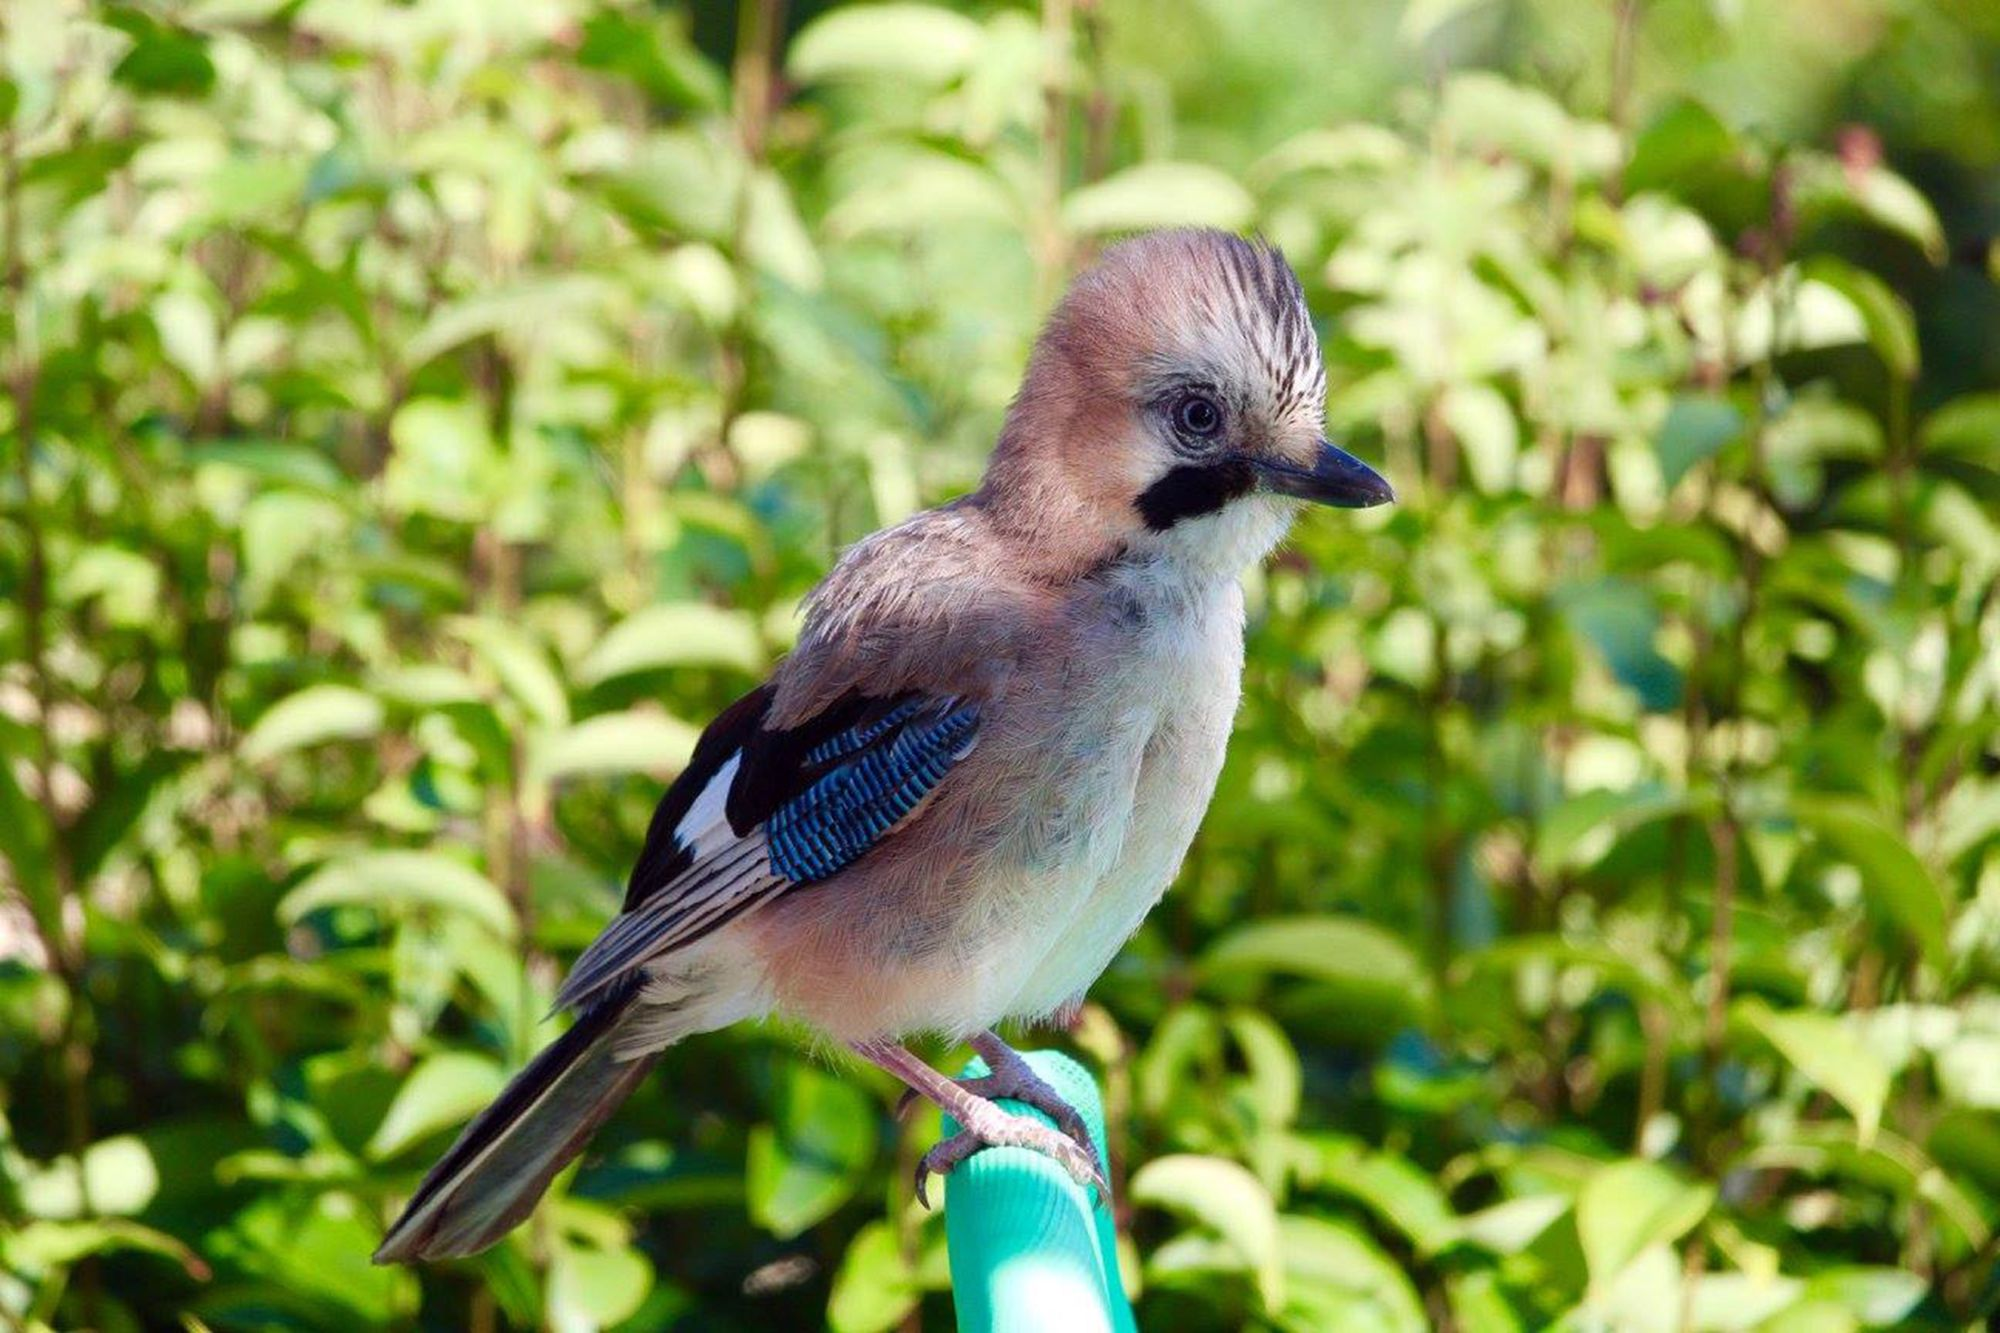 Romance of Venice & Croatia Tours 2019 - 2020 -  BlueJay bird